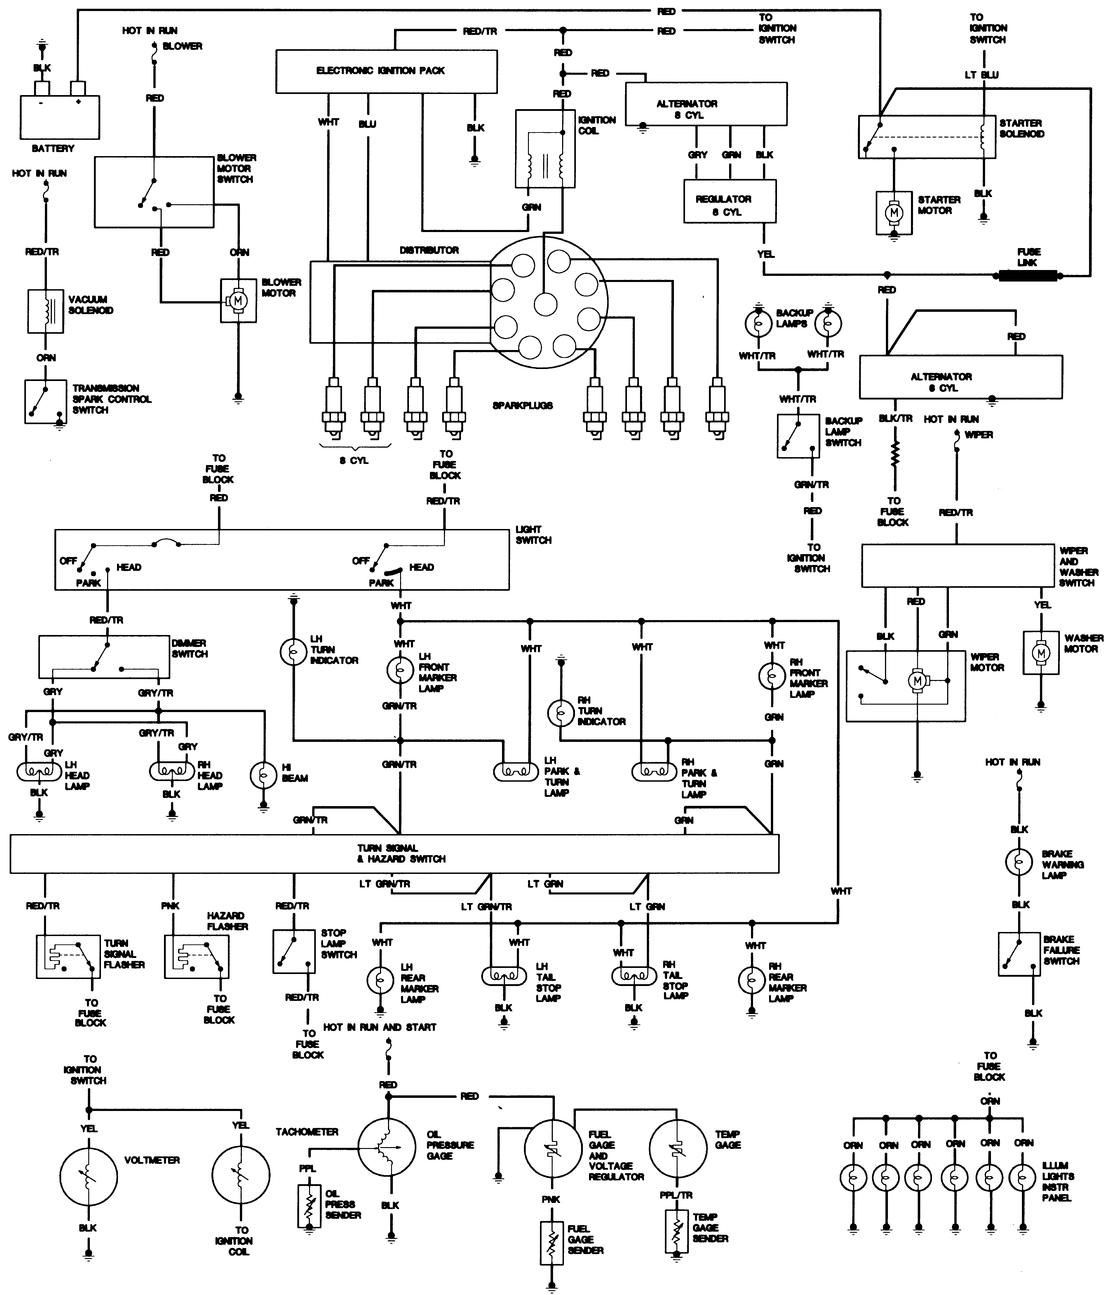 small resolution of 1980 cj5 wiring diagram furthermore jeep cj7 tachometer wiring 1980 cj5 wiring schematic for